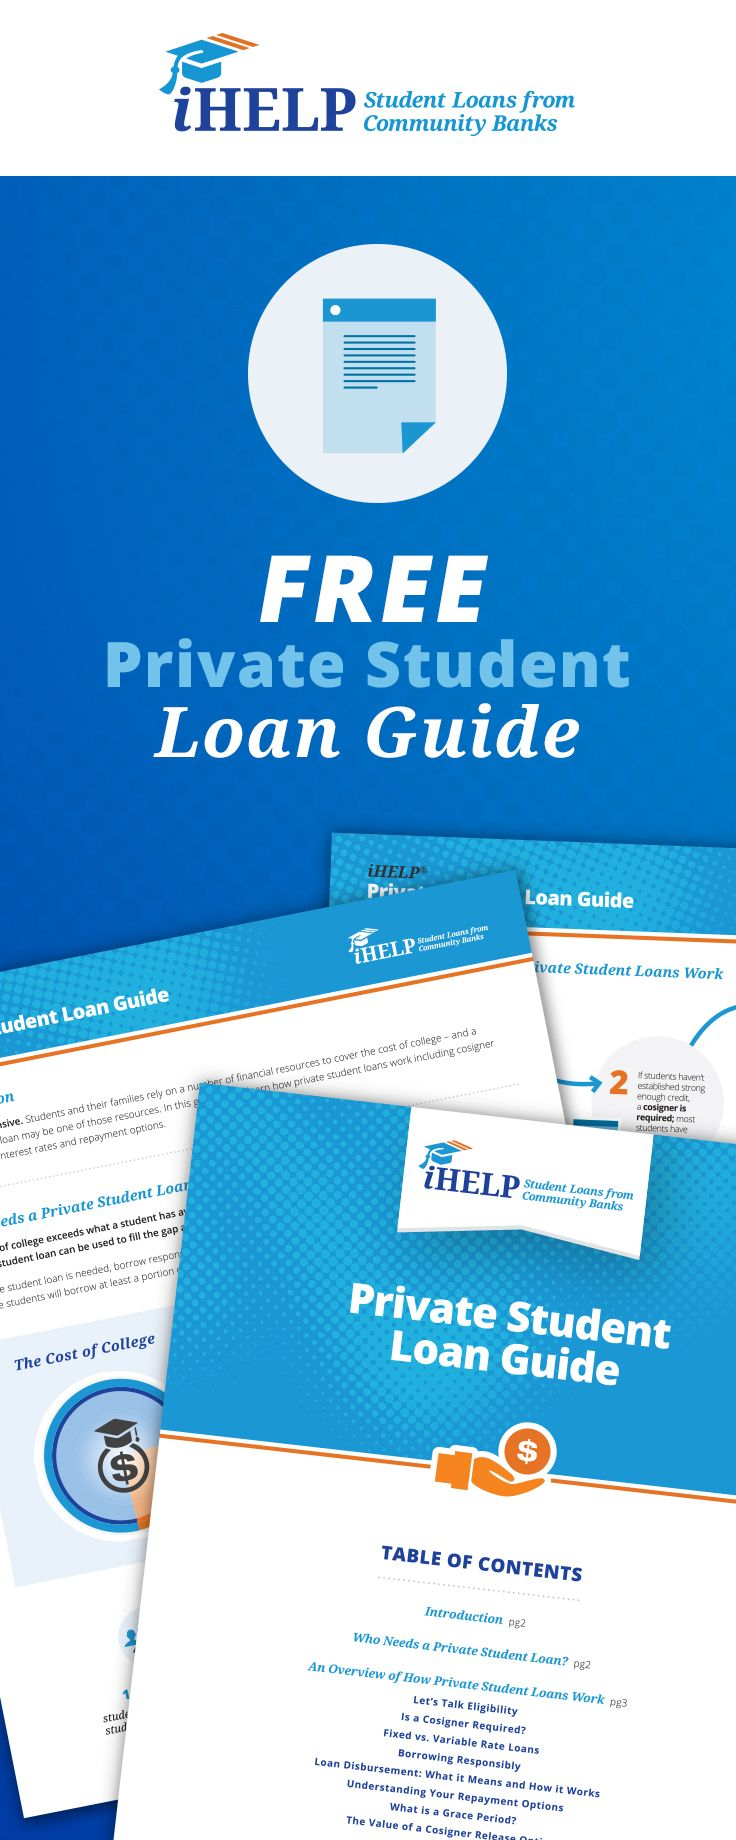 Everything you've wondered about private student loans - and it's free! Click to get your Private Student Loan Guide.